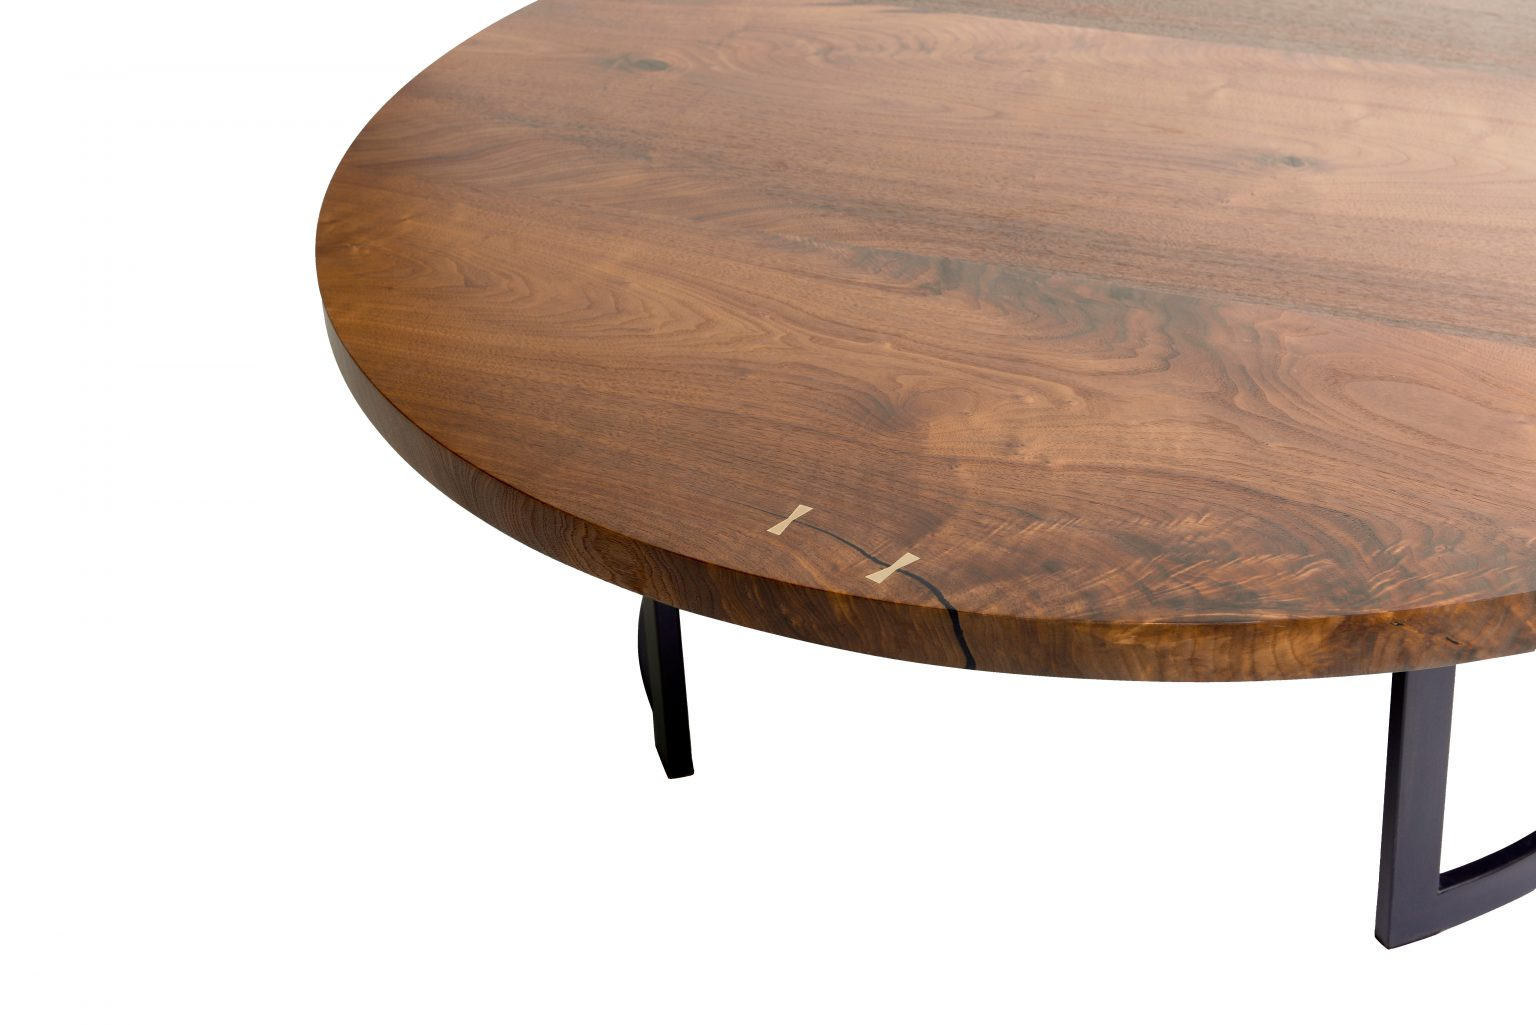 Gotham Wood Coffee Table